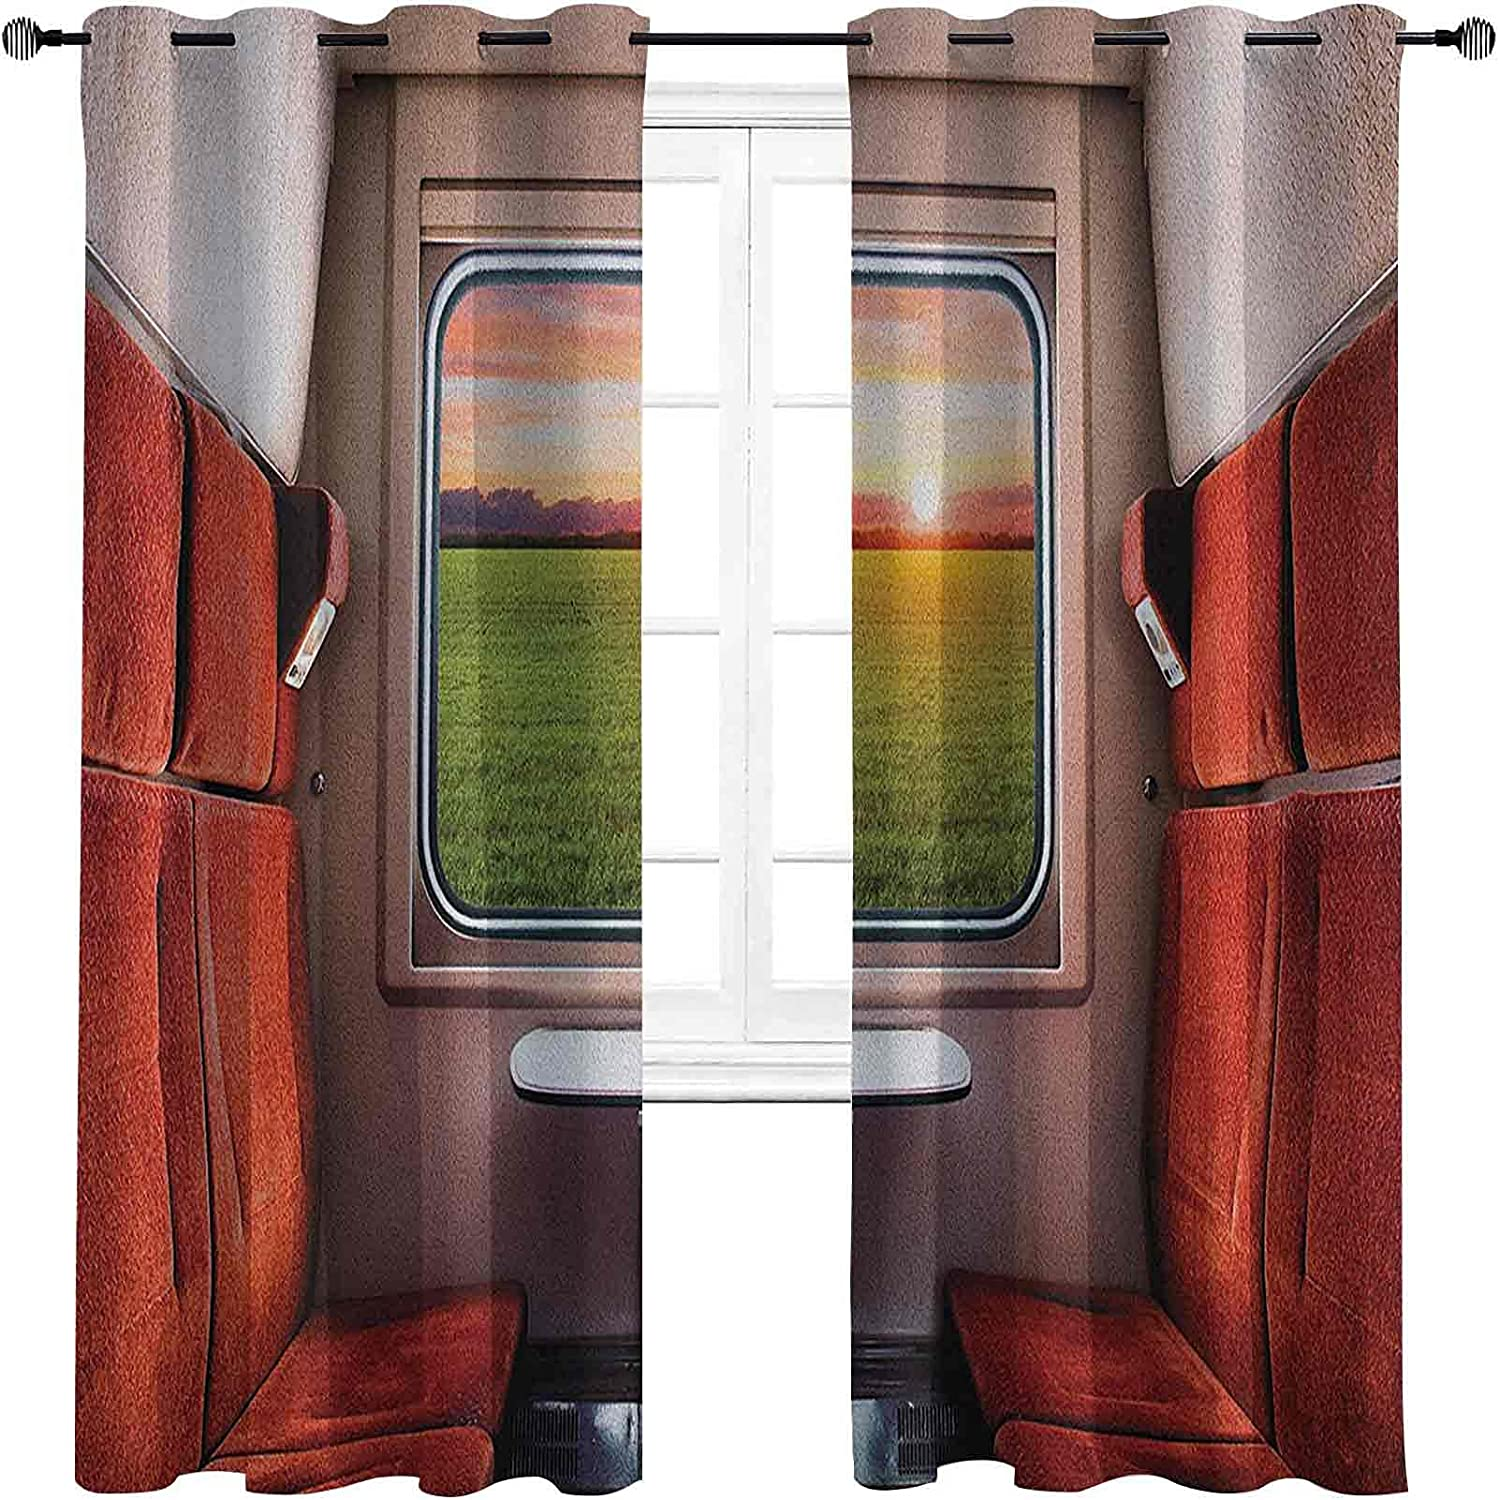 New arrival Nature High-Strength Over item handling ☆ Blackout Curtains Setting Fresh fro